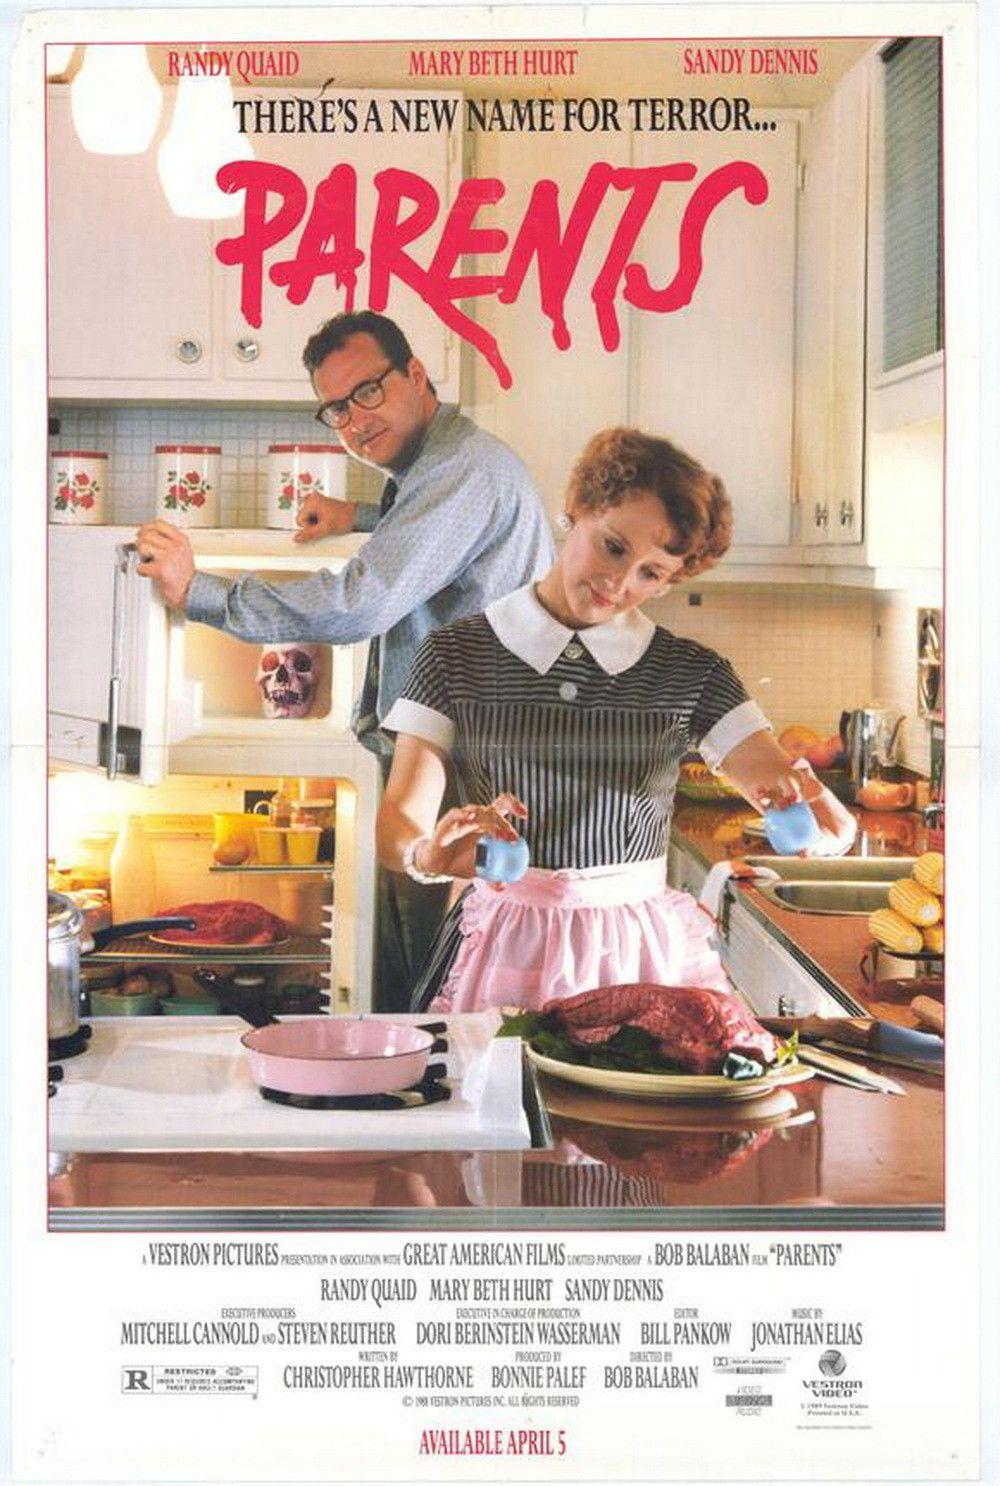 American Taboo Movie parents (1989) a movie about the suburbs and one of the most